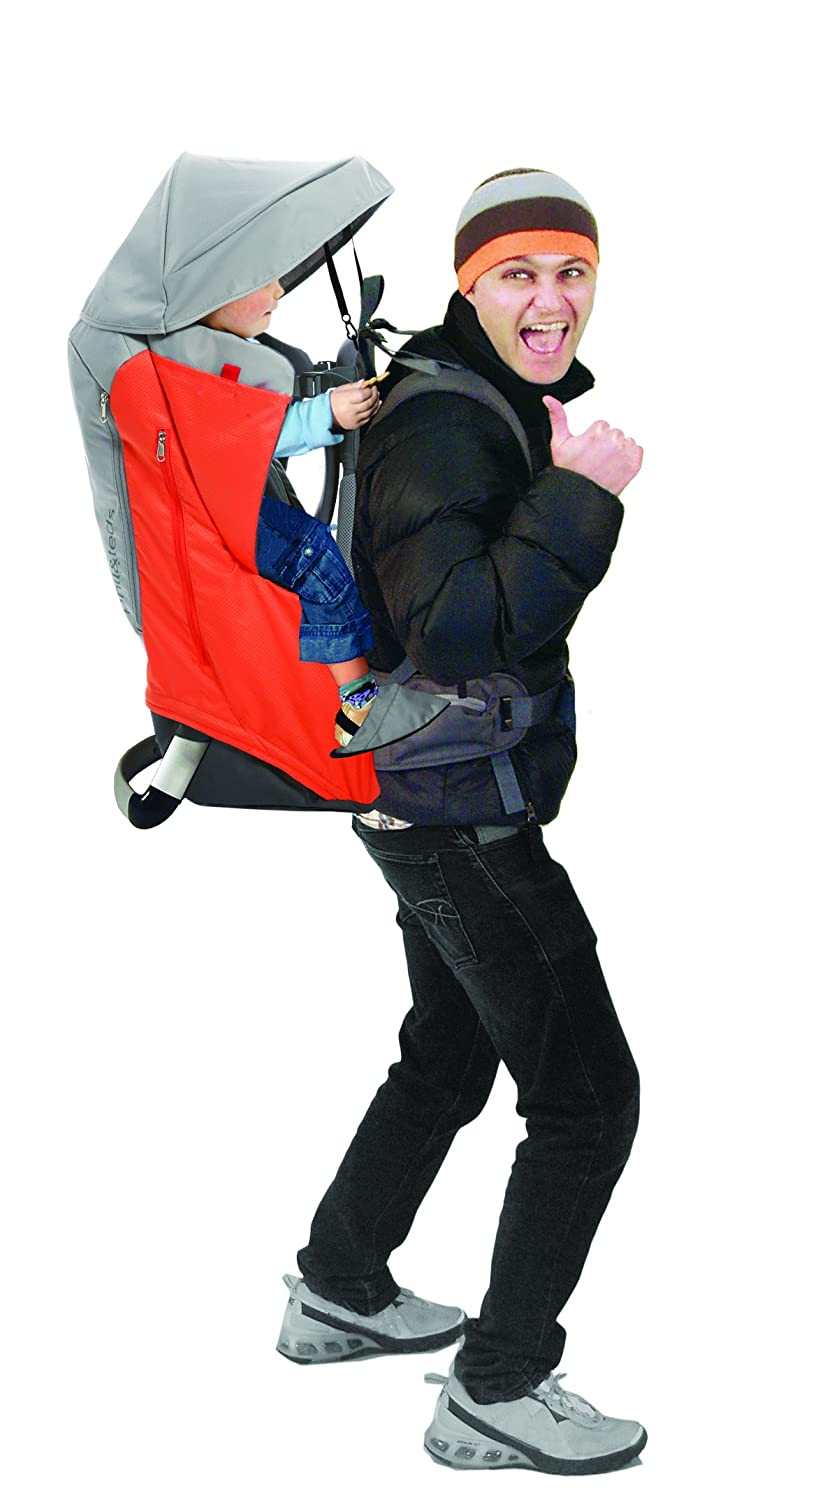 2 Year Guarantee Change Mat phil/&teds Escape Child Carrier Frame Backpack Articulating Dual Core Waist Belt Daypack 30L Storage Includes Hood Height Adjustable Body-Tech Harness Charcoal